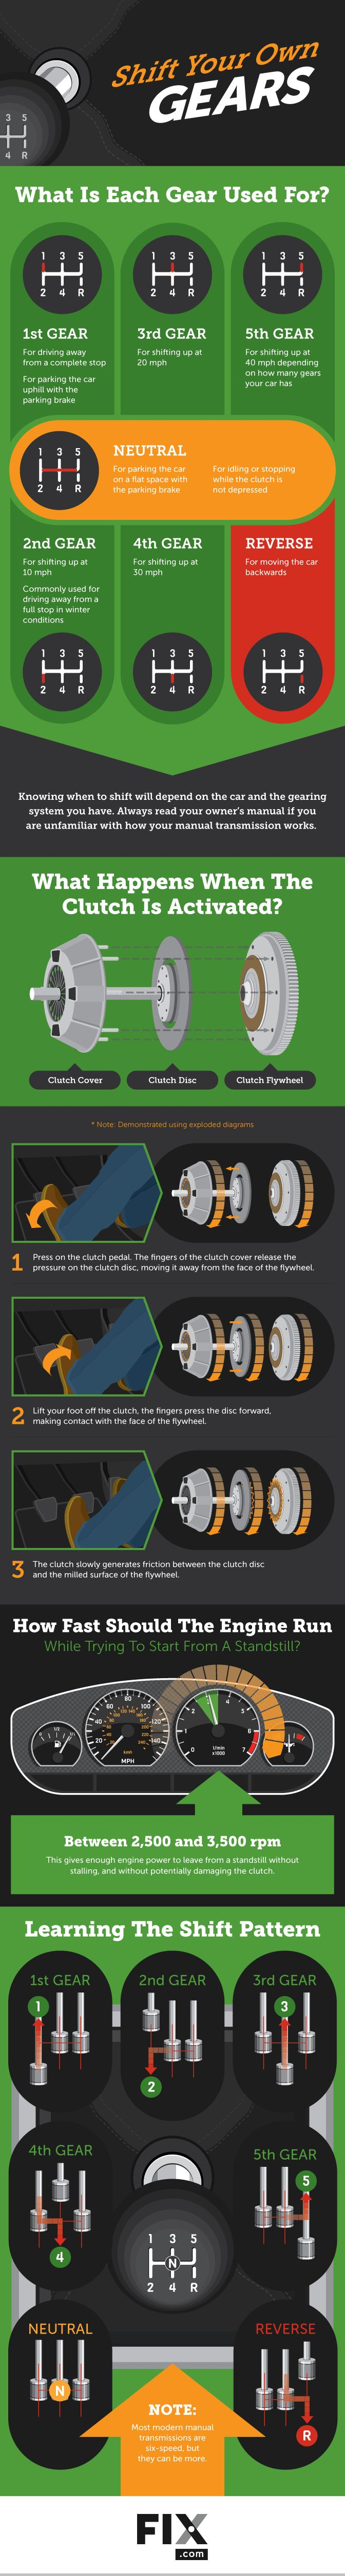 A guide to driving a manual transmission. Learning has never been easier.